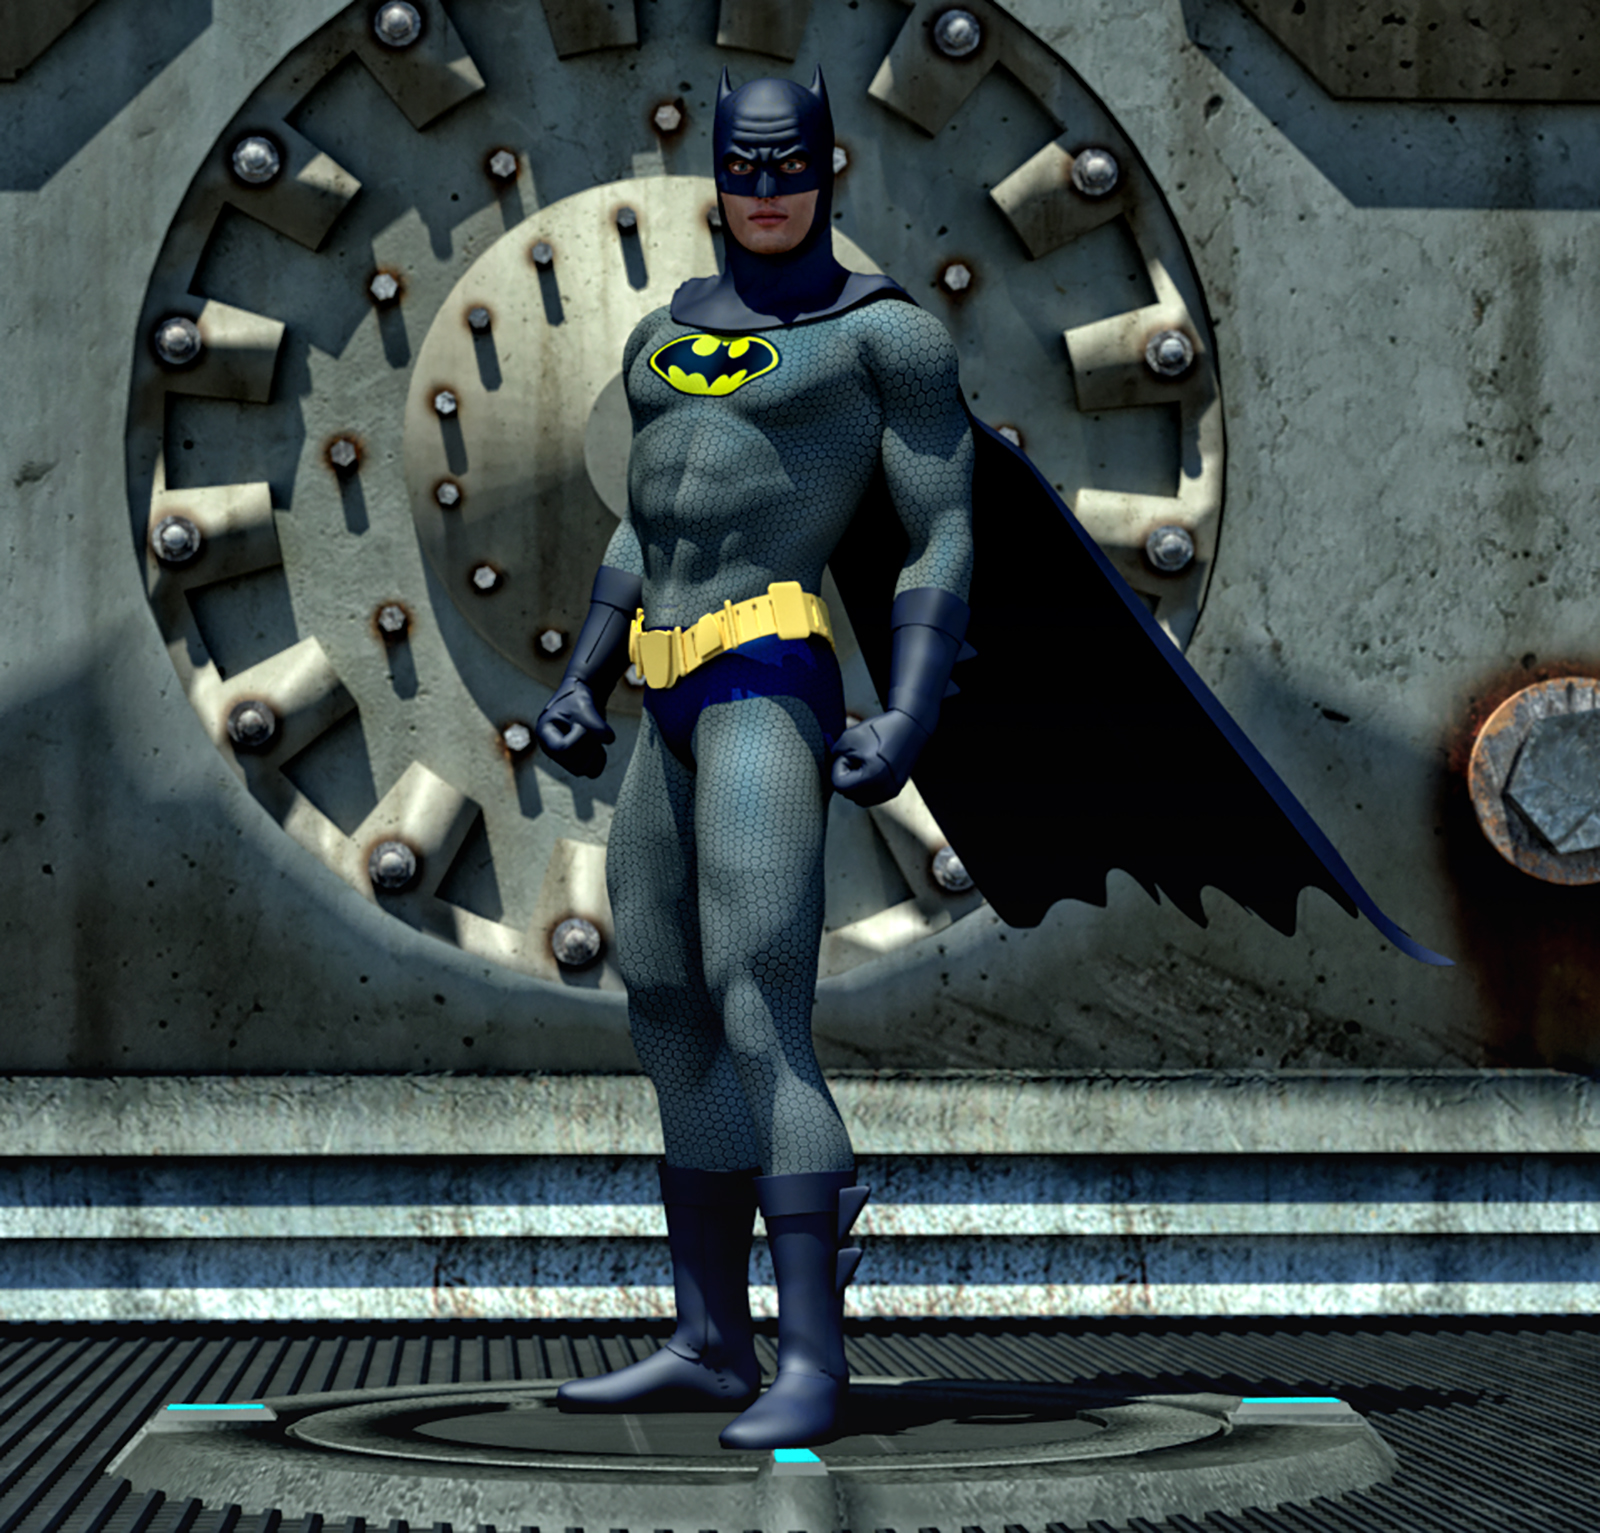 Batman 2nd skin textures for M4